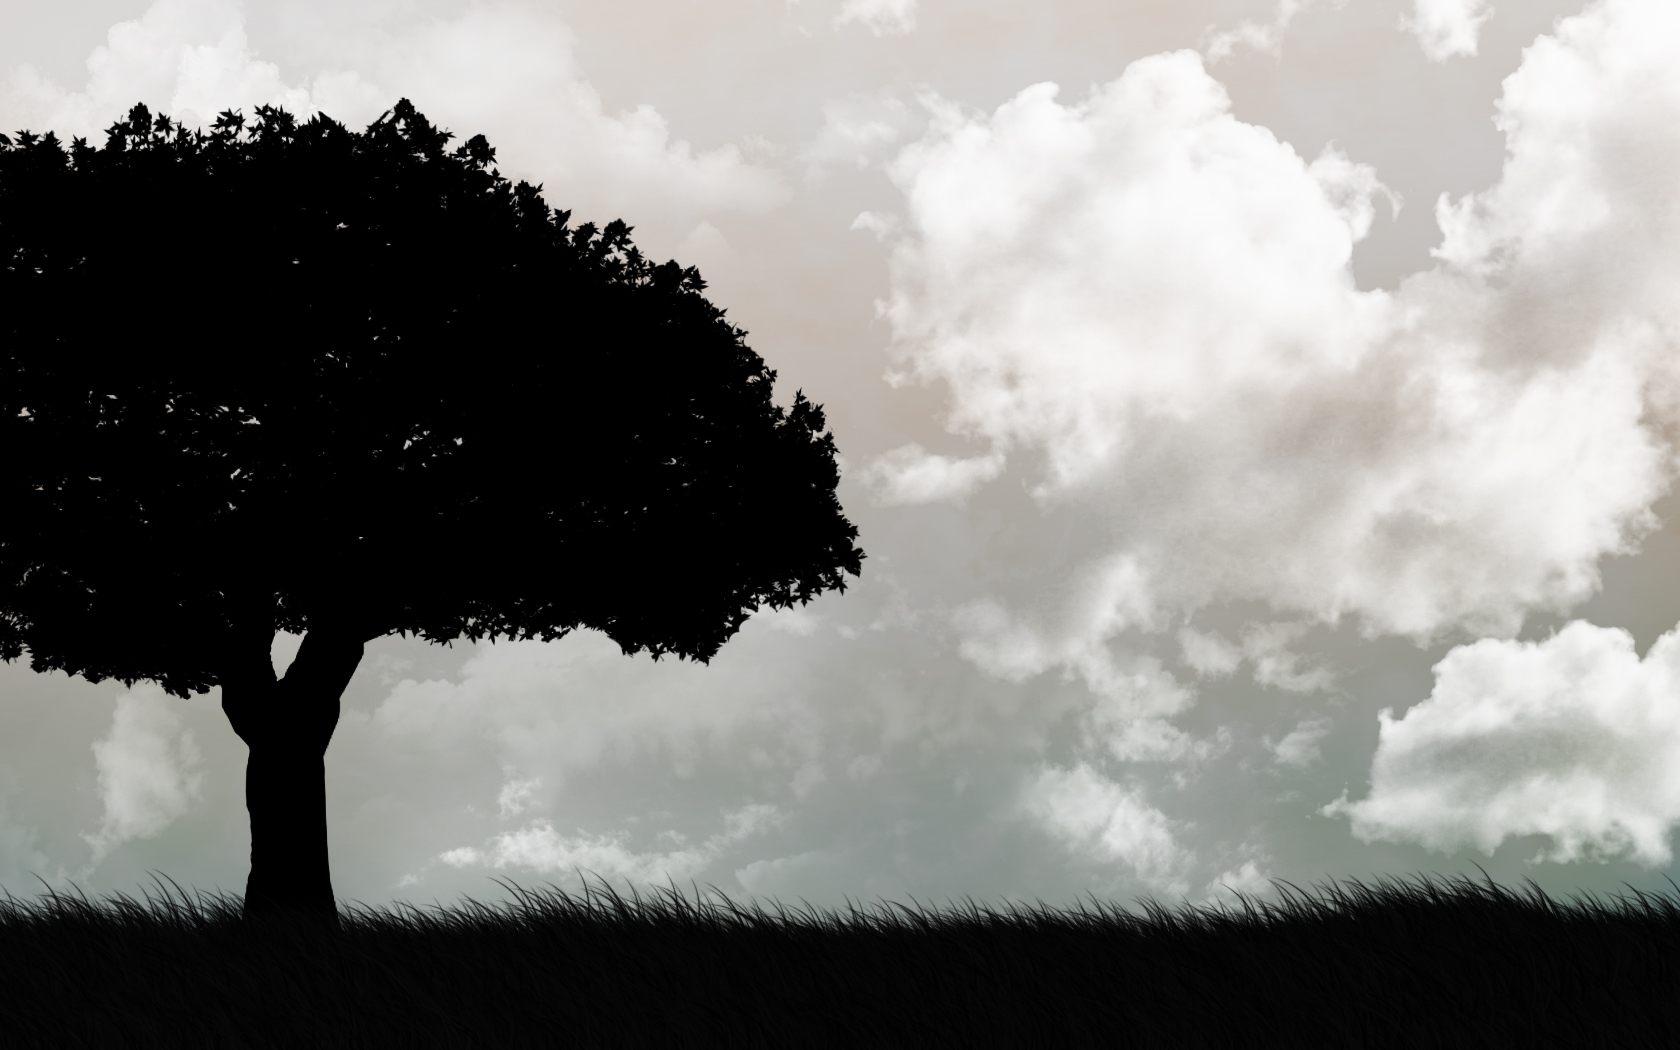 Tree Black and White HD Background Wallpapers 4253 - Amazing